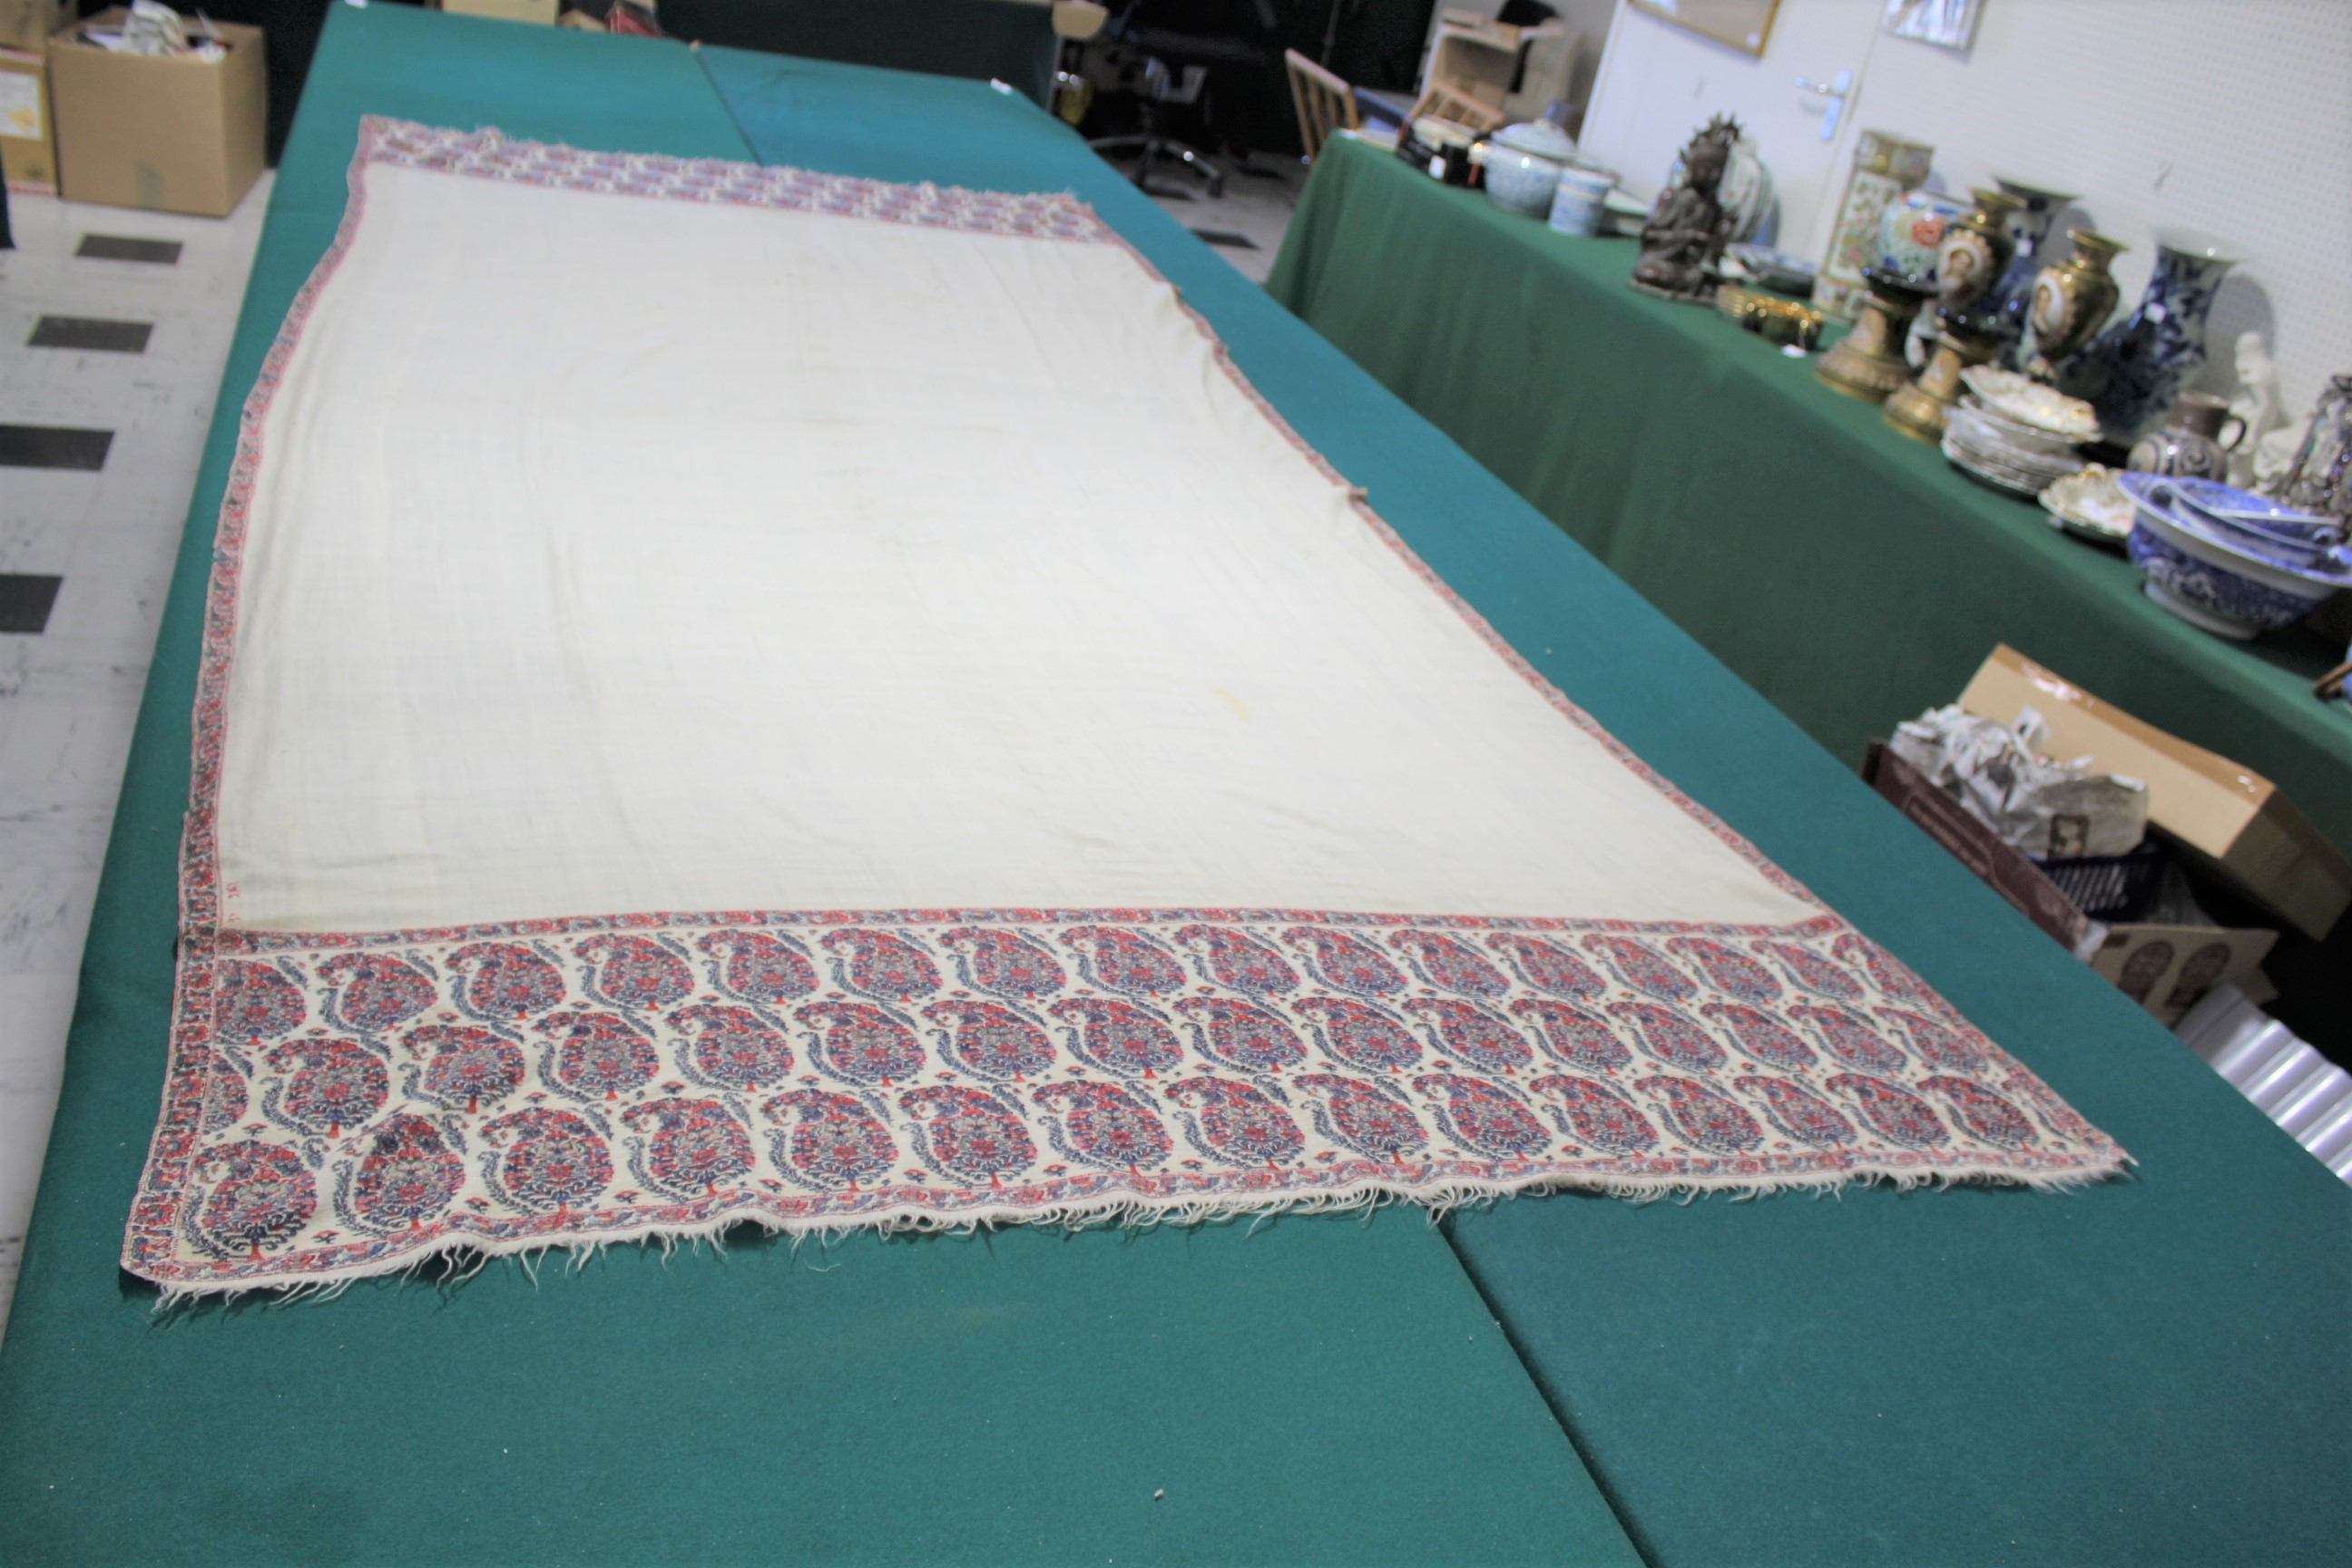 19THC PAISLEY SHAWL a mid 19thc paisley wool cashmere shawl (264cms by 126cms), and also with a fine - Image 3 of 9